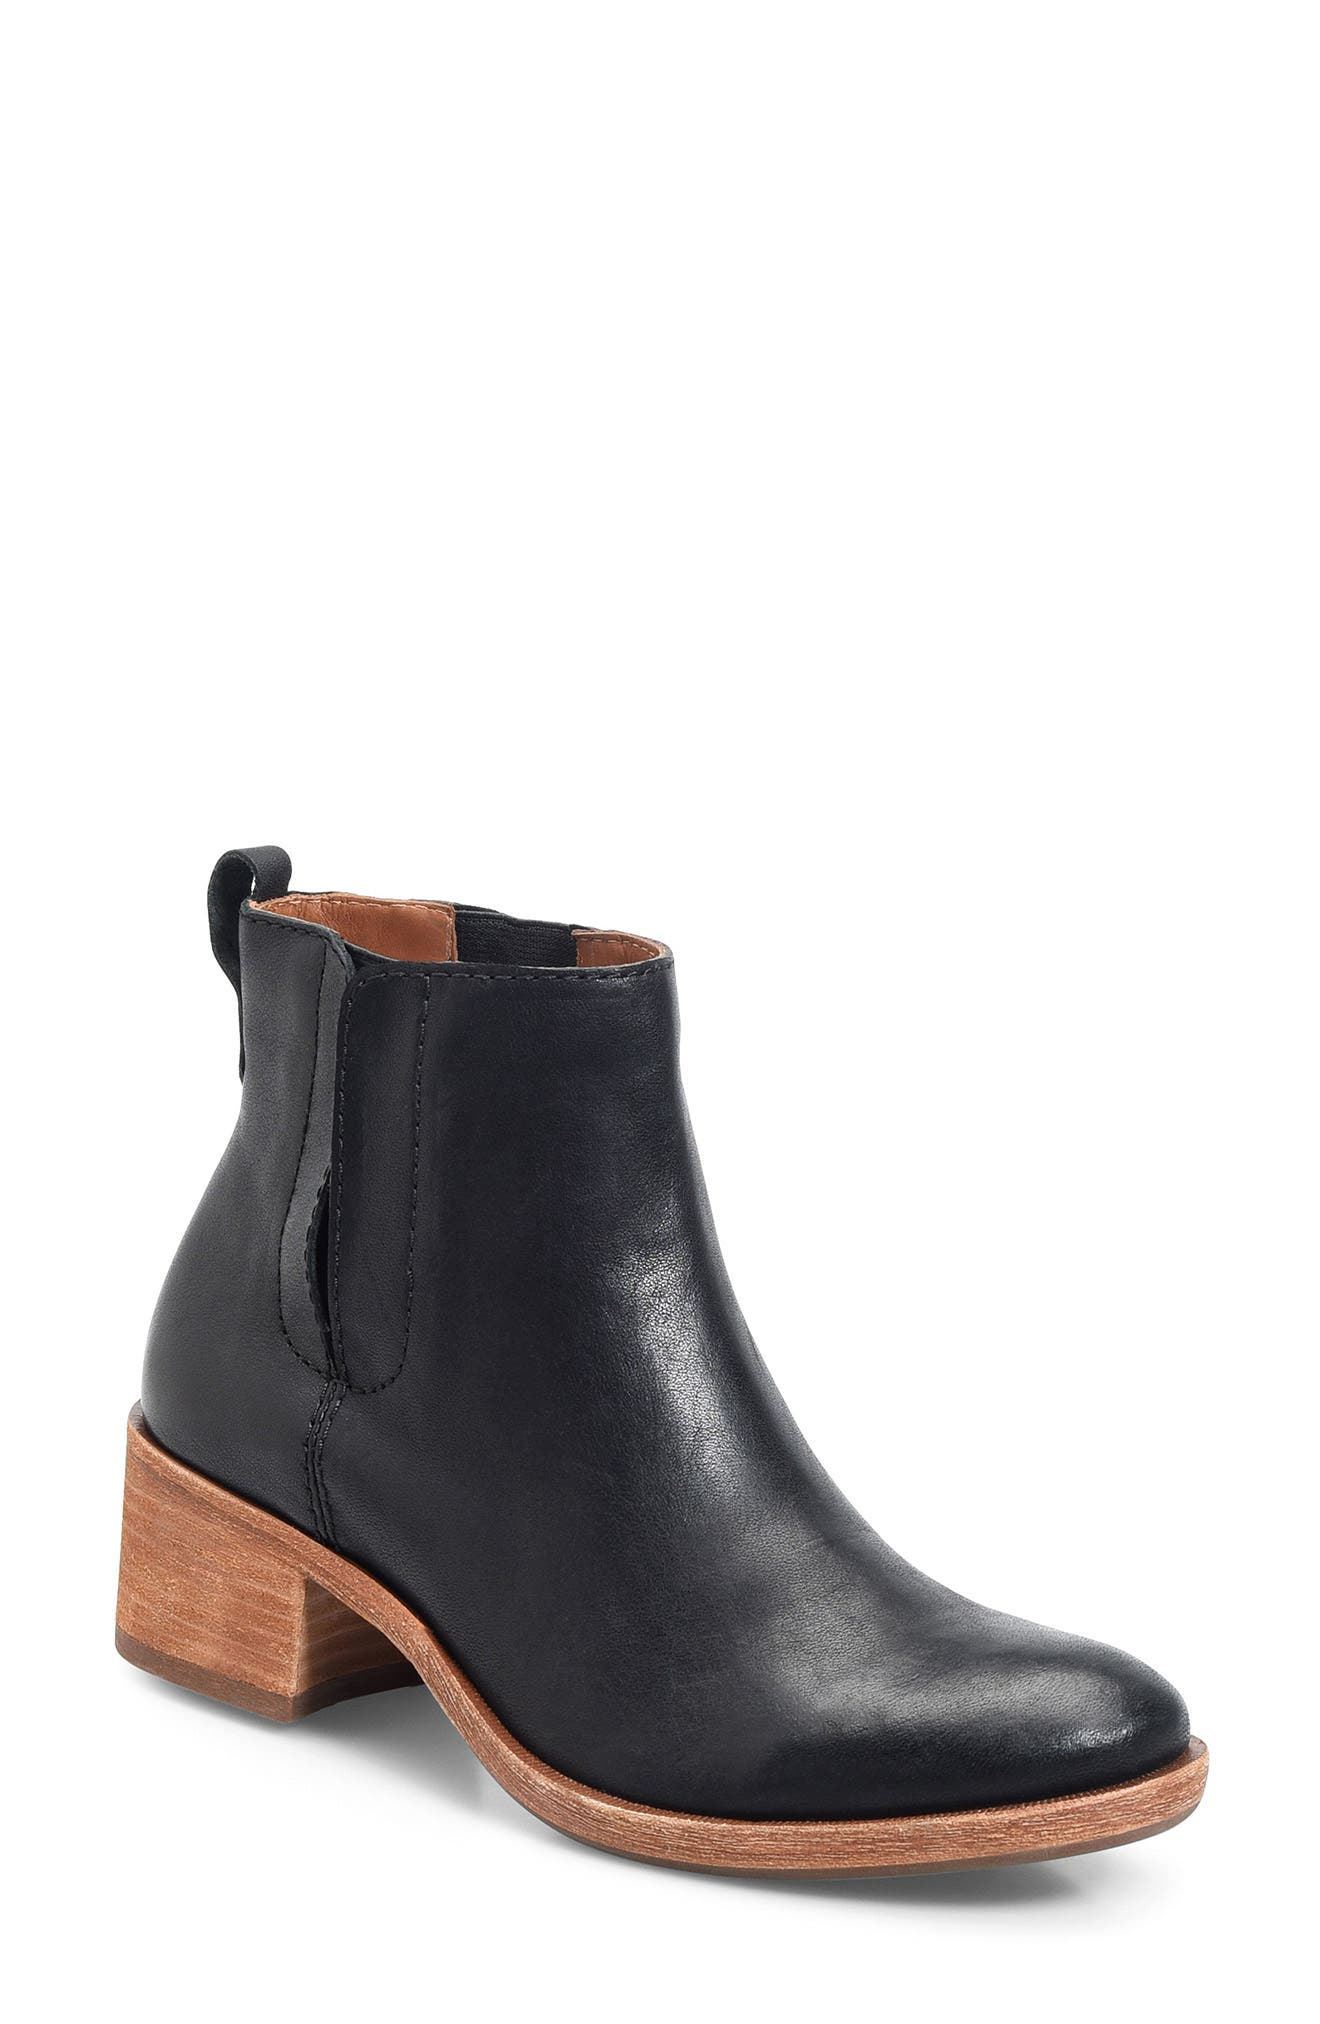 Mindo Chelsea Bootie,                         Main,                         color, BLACK LEATHER